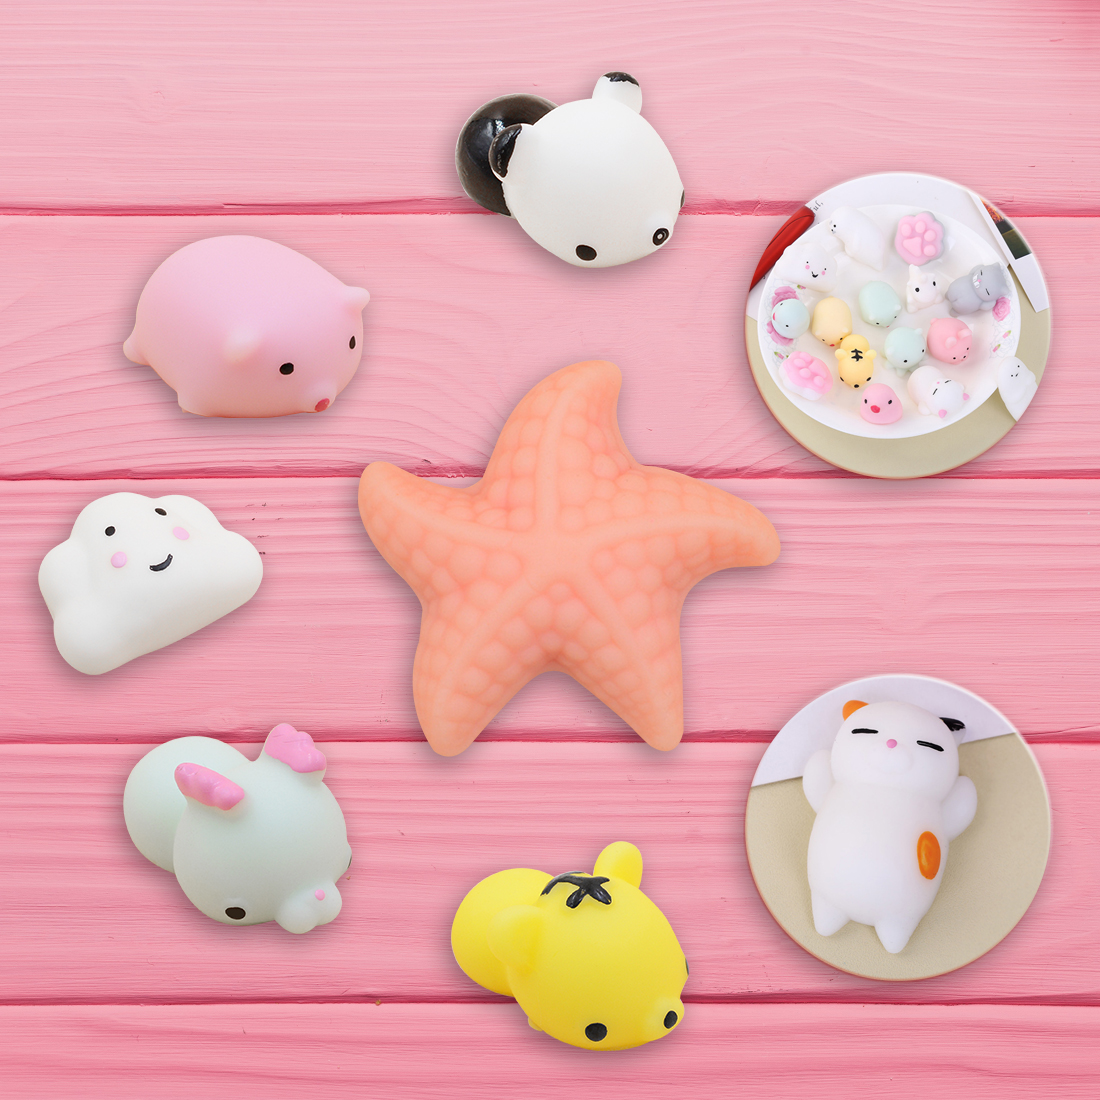 Etmakit Mini Squishy Seal Cute Phone Straps Slow Rising Soft Press Squeeze Kawaii Bread Cake Kids Toy Phone Diy Accessories Cellphones & Telecommunications